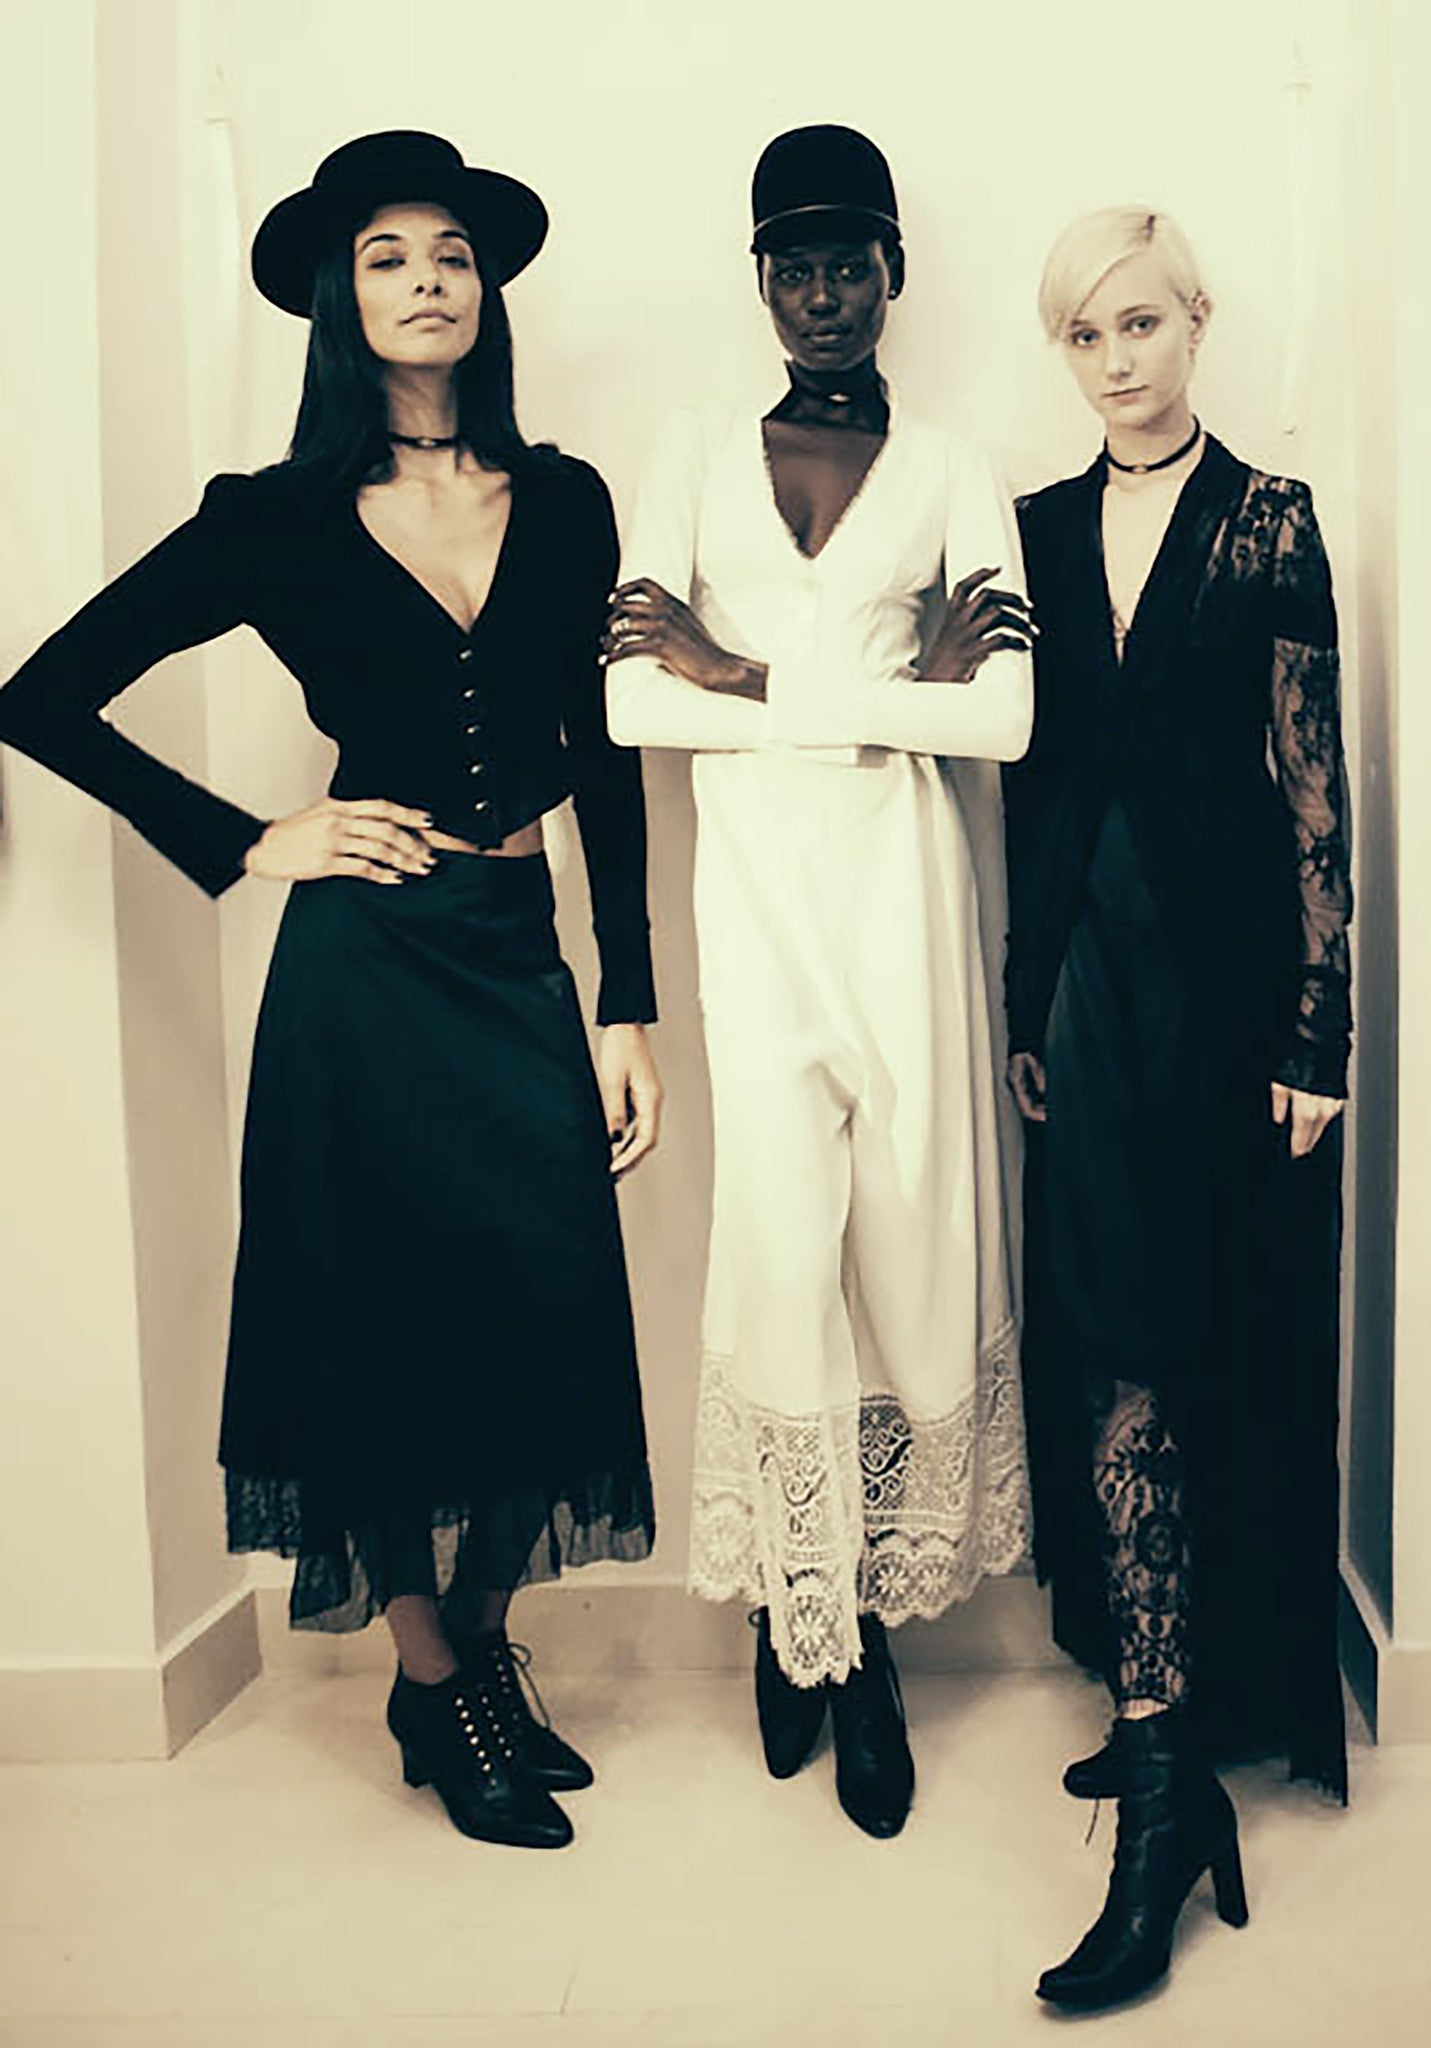 Ajak Deng IMG model Heidy de la Rosa Juliette Fazekas Fitted White Victorian Jacket & Lace Jumper Wendy Nichol Clothing Designer Fashion Runway show SS15 handmade in NYC custom tailoring